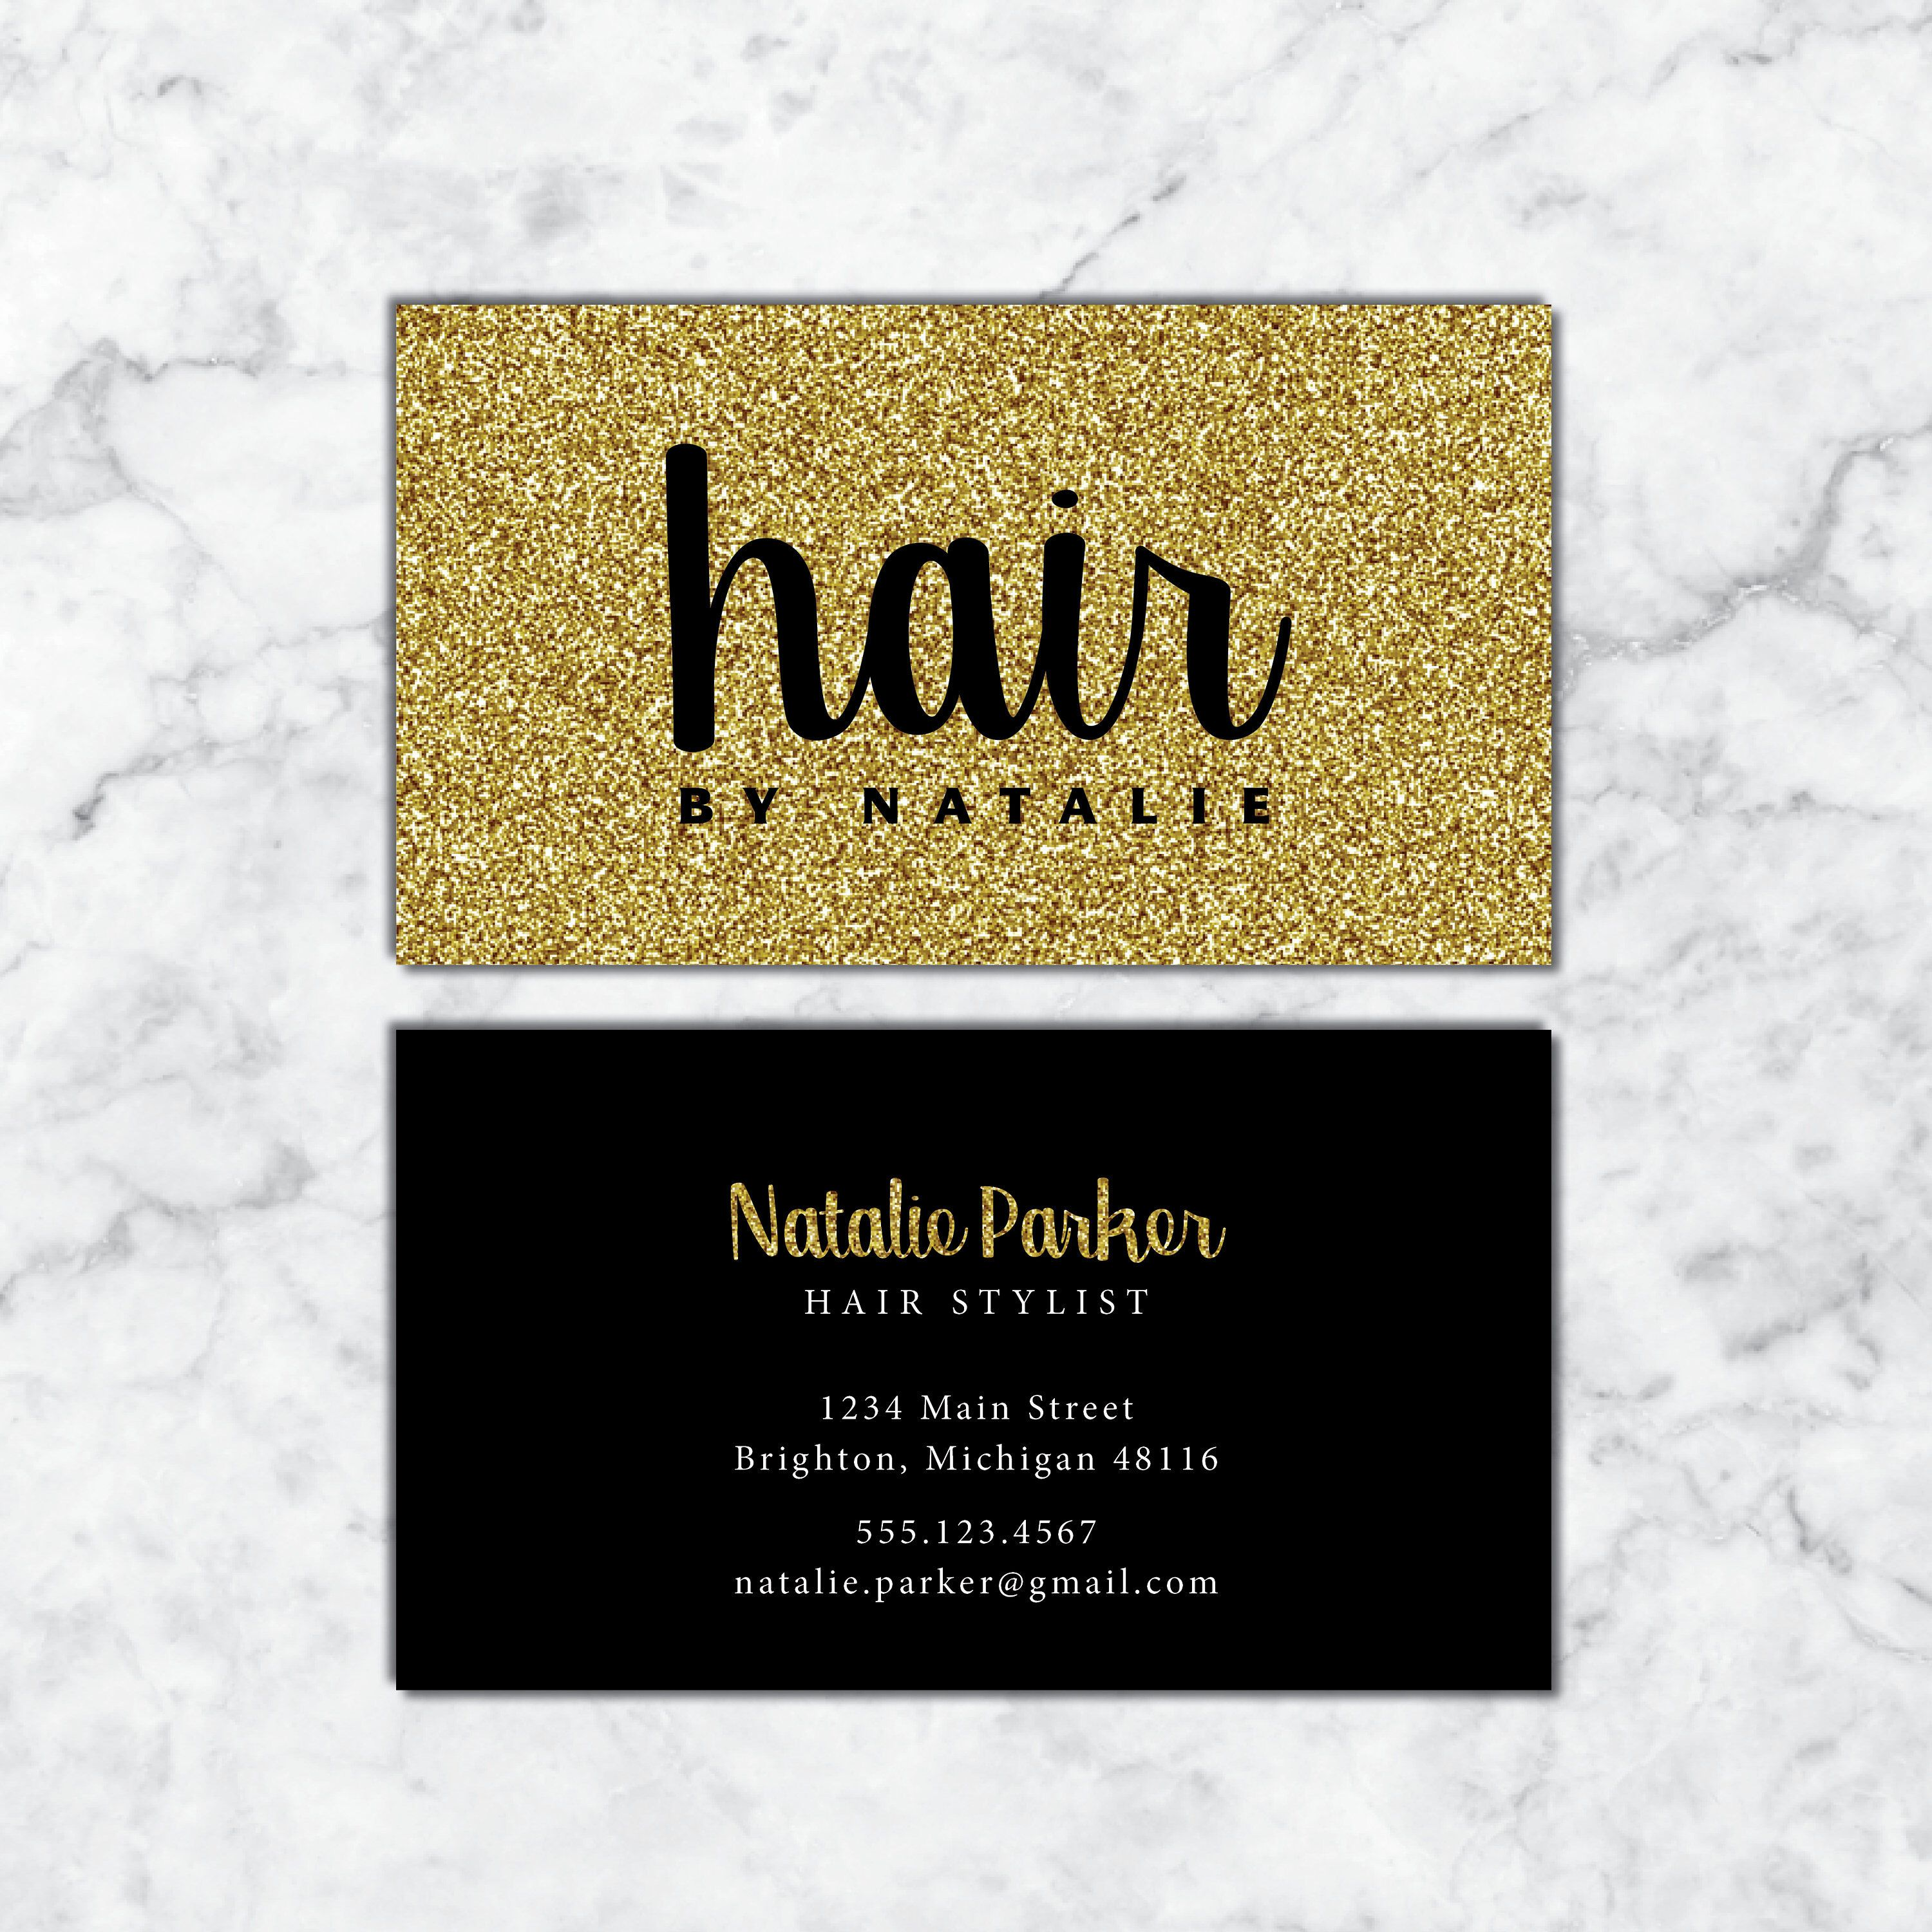 Business cards hairstylist hairdresser business cards white and business cards for hair stylist black and gold glitter hair business cards hairdresser business colourmoves